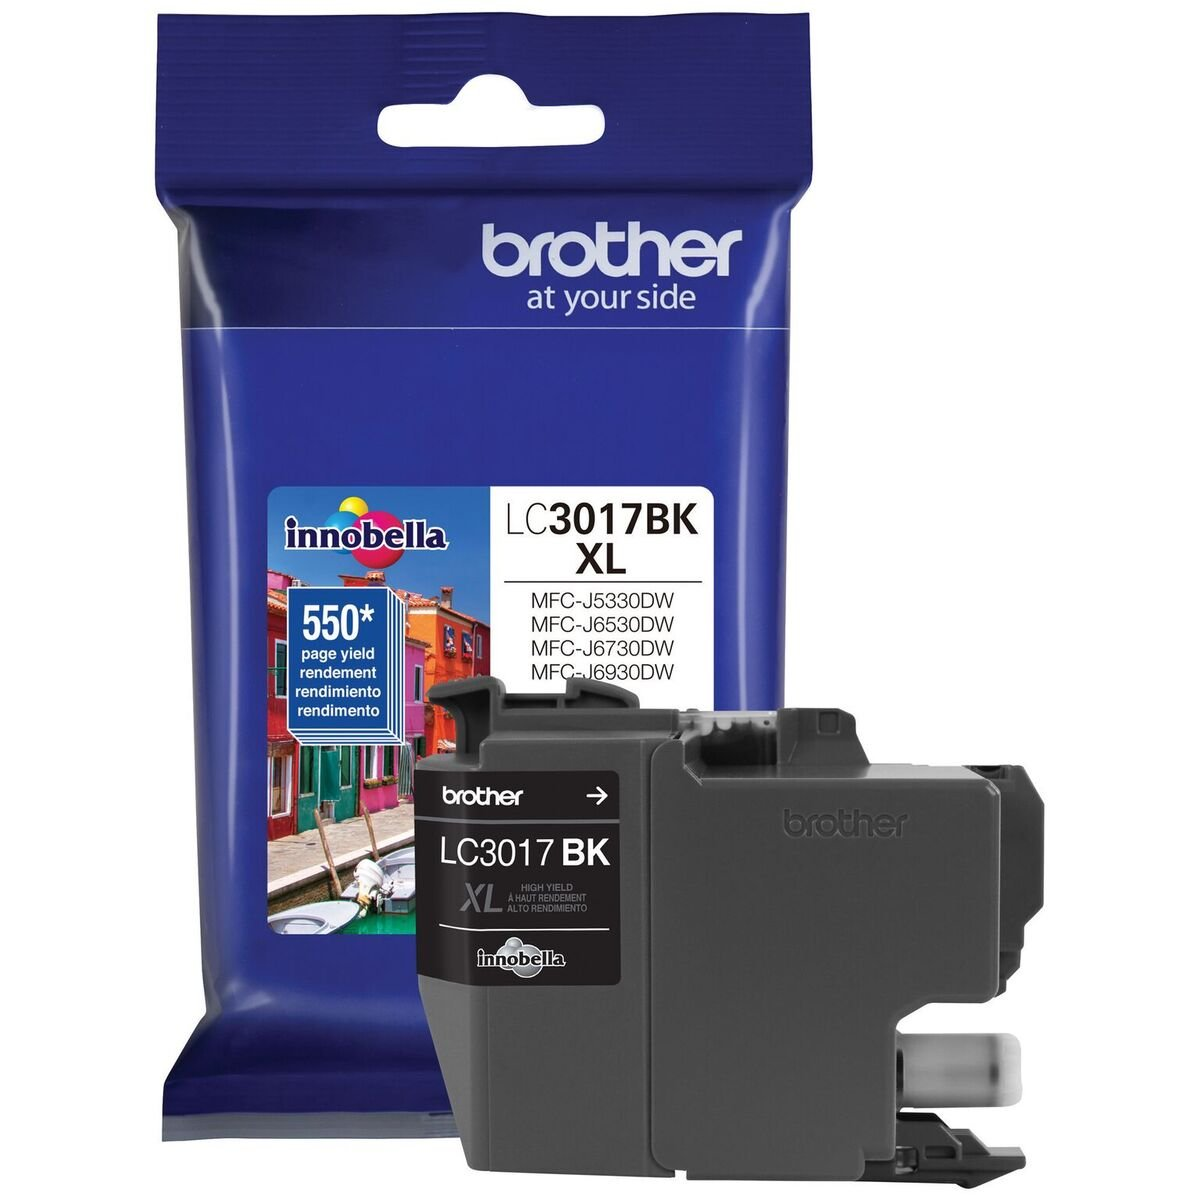 Brother LC3017BK High Yield Black Ink Cartridge by Brother (Image #1)